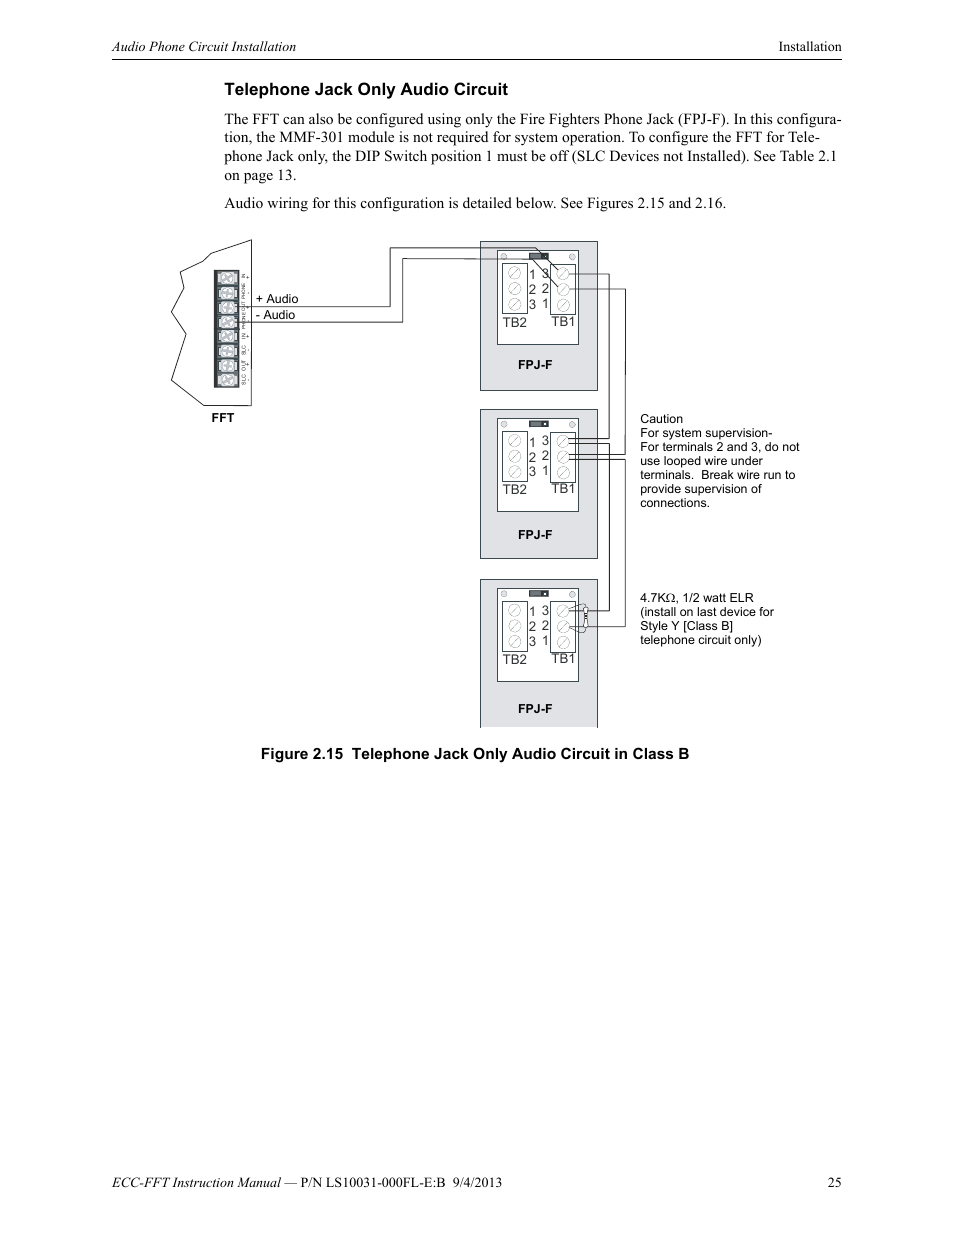 Telephone Jack Only Audio Circuit Fire Lite Ecc Fft Firefighters Circuits User Manual Page 25 32